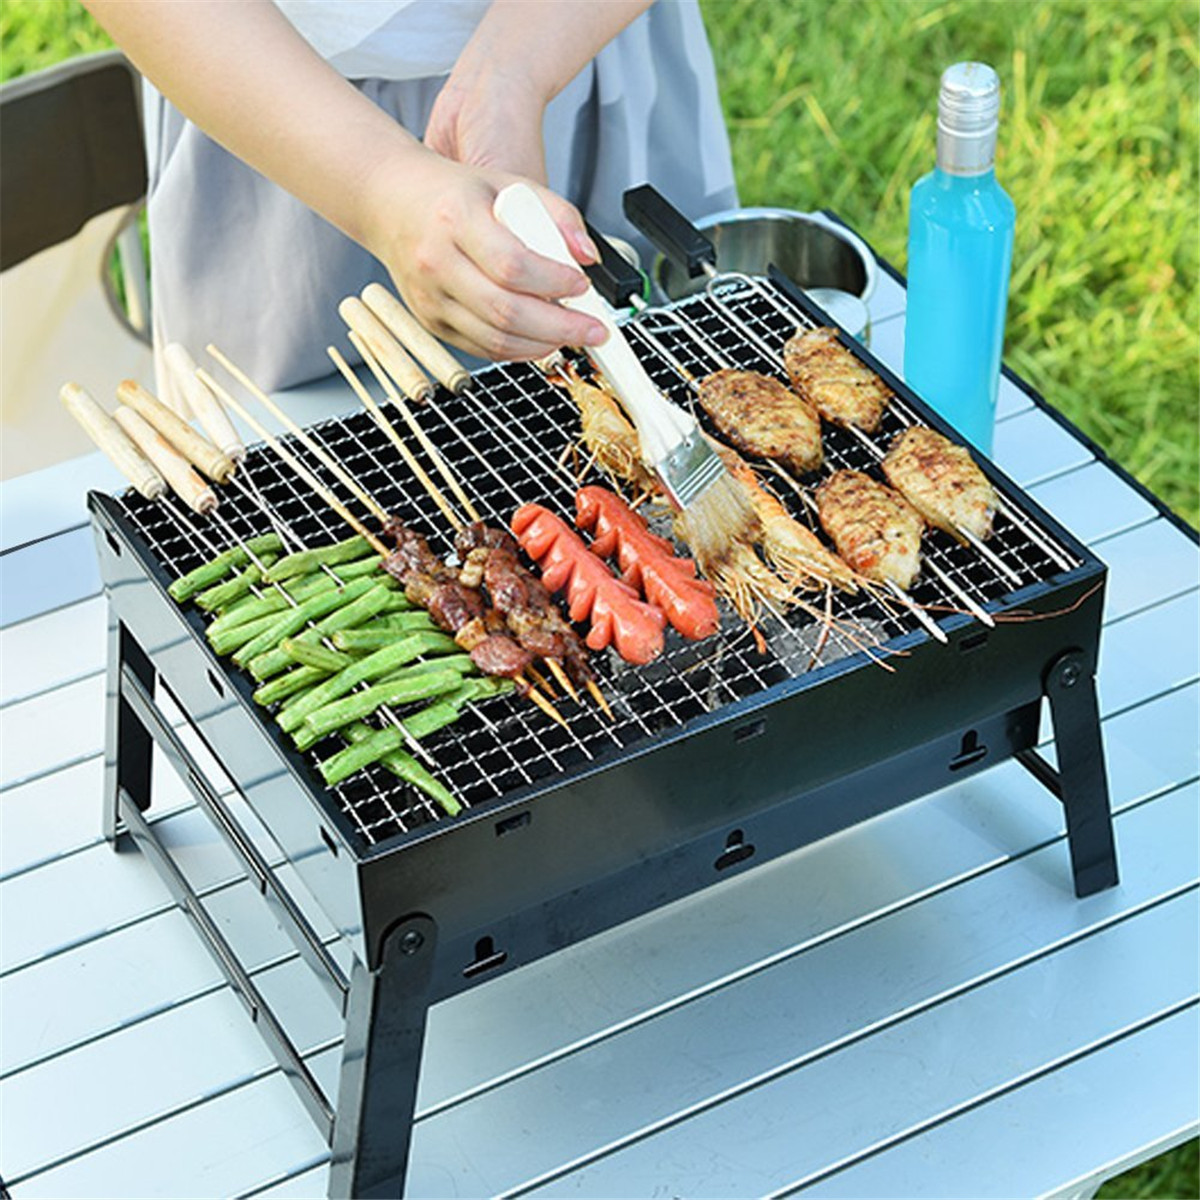 Mini Portable Folding Stainless Steel  3-5 people Notebook Charcoal Grill Barbecue Grill Camping BBQ Outdoor Cooking